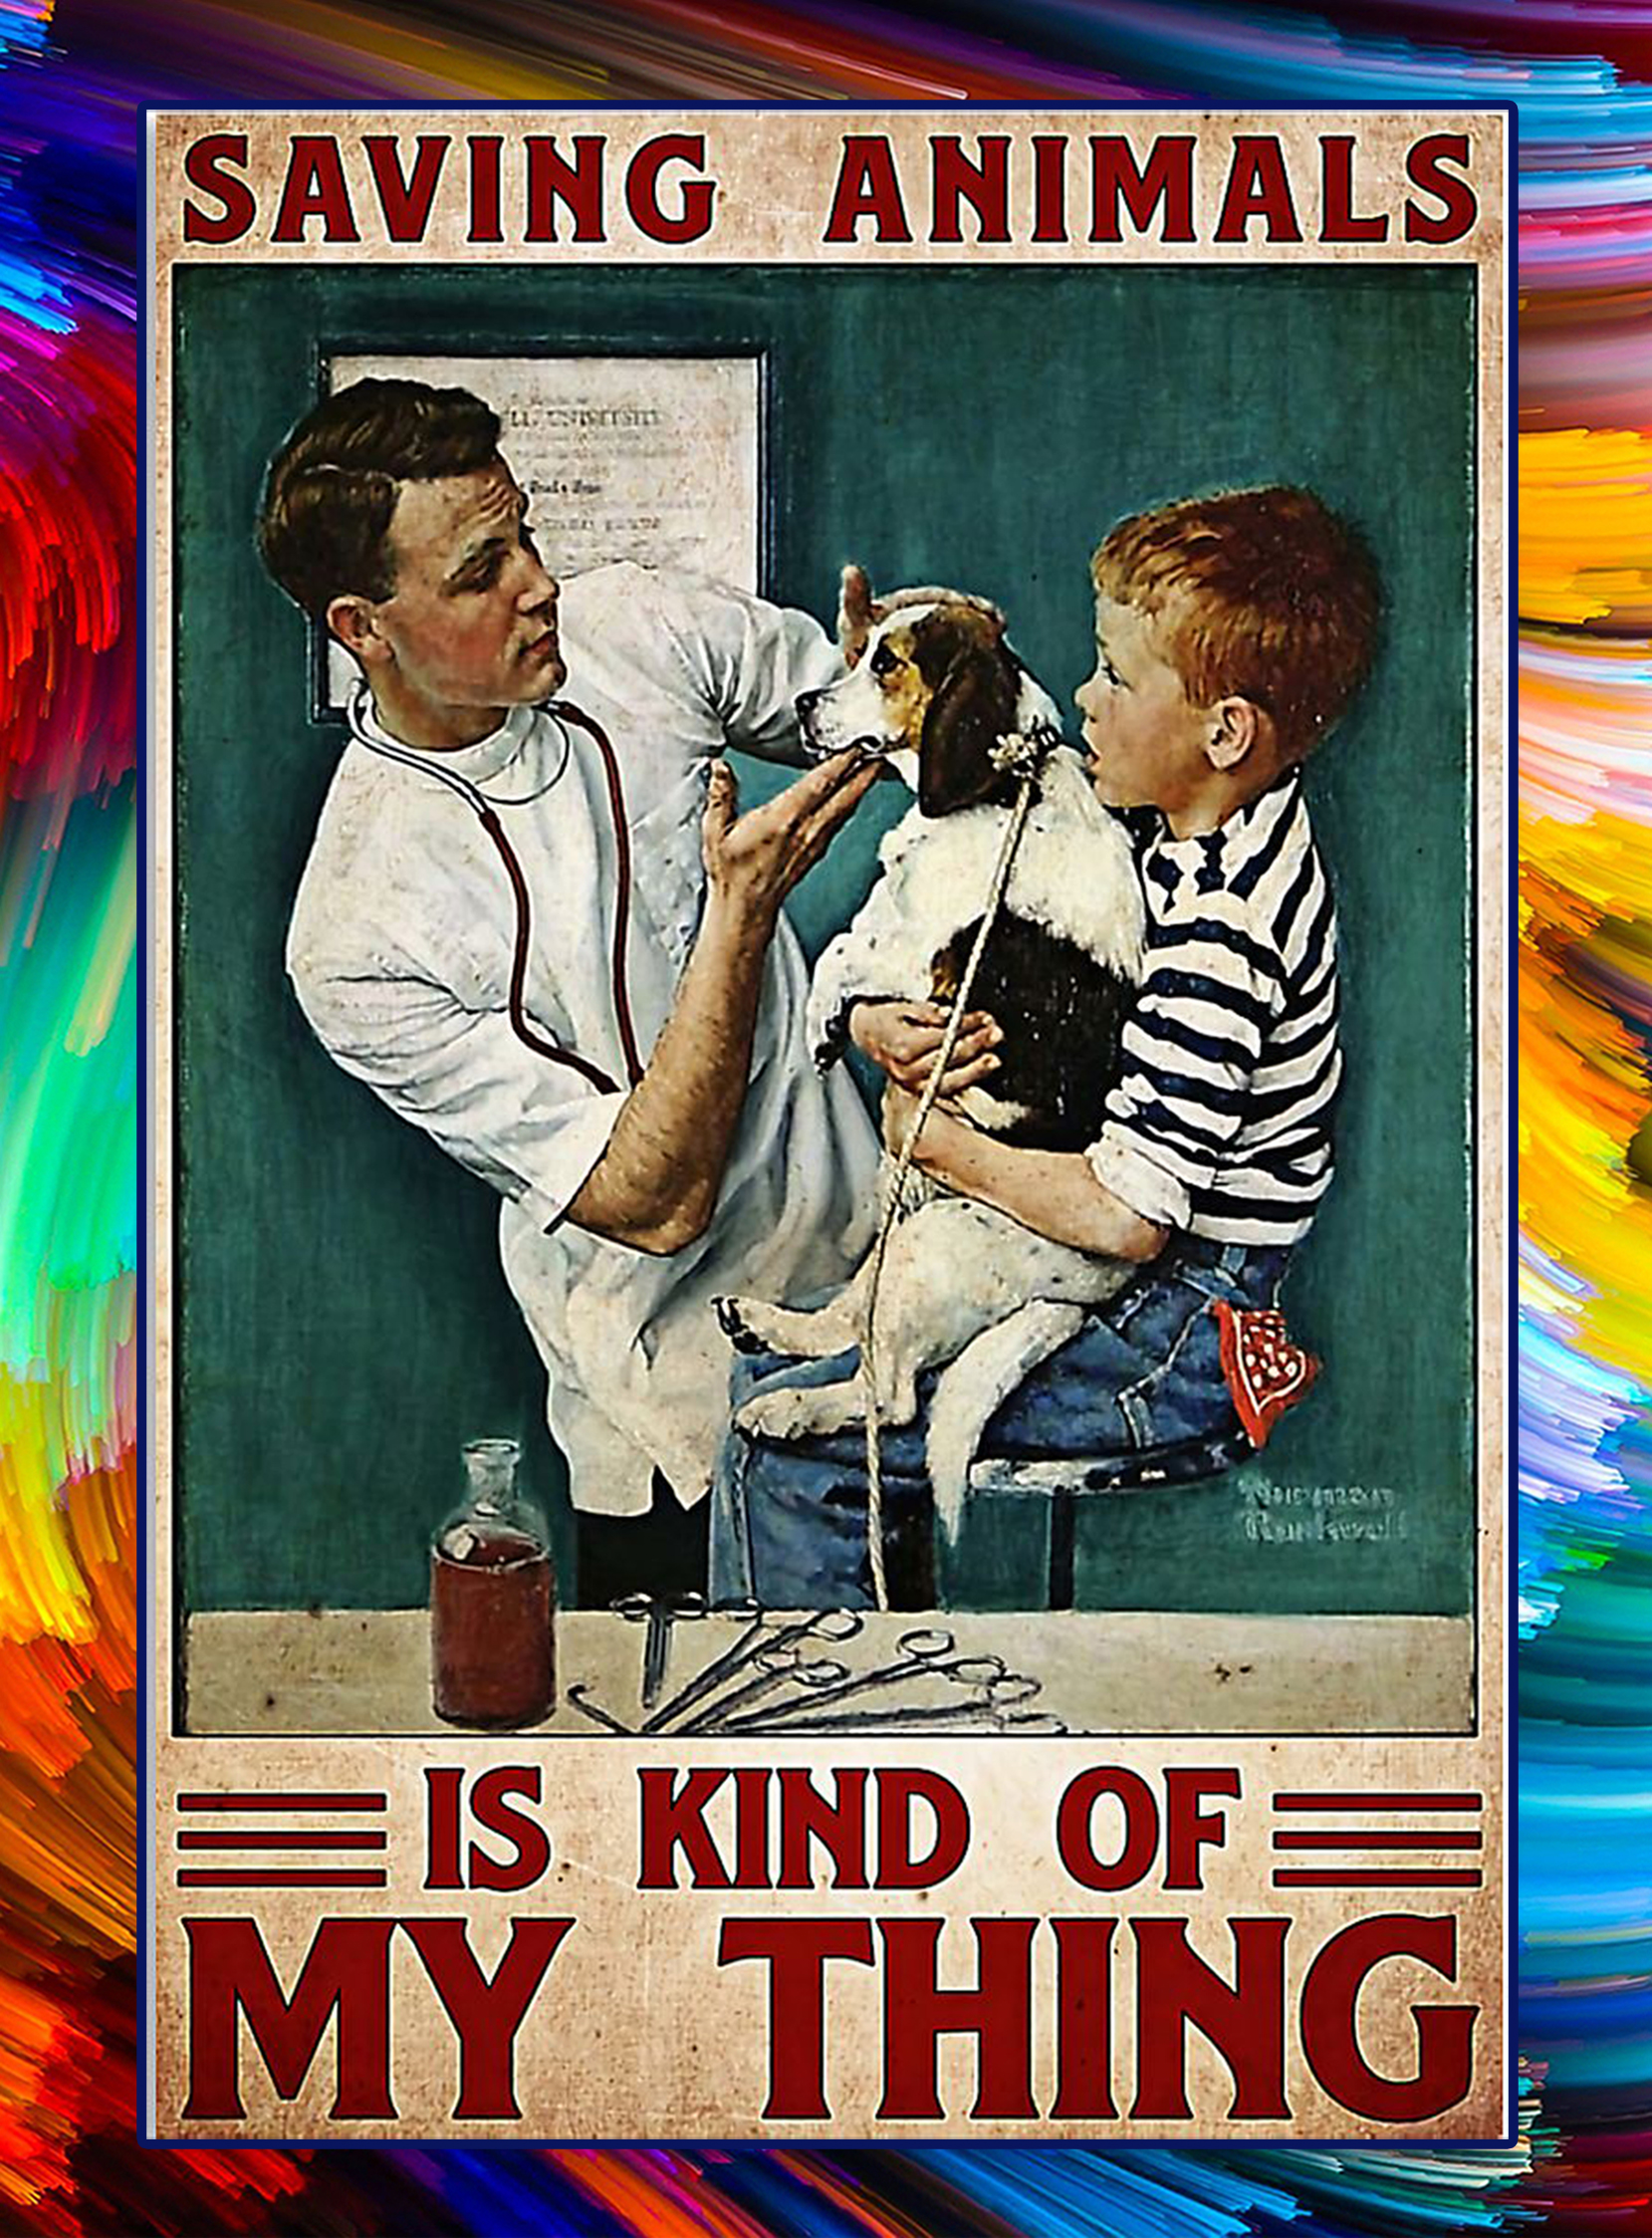 Saving animals is kind of my thing veterinarian poster - A1